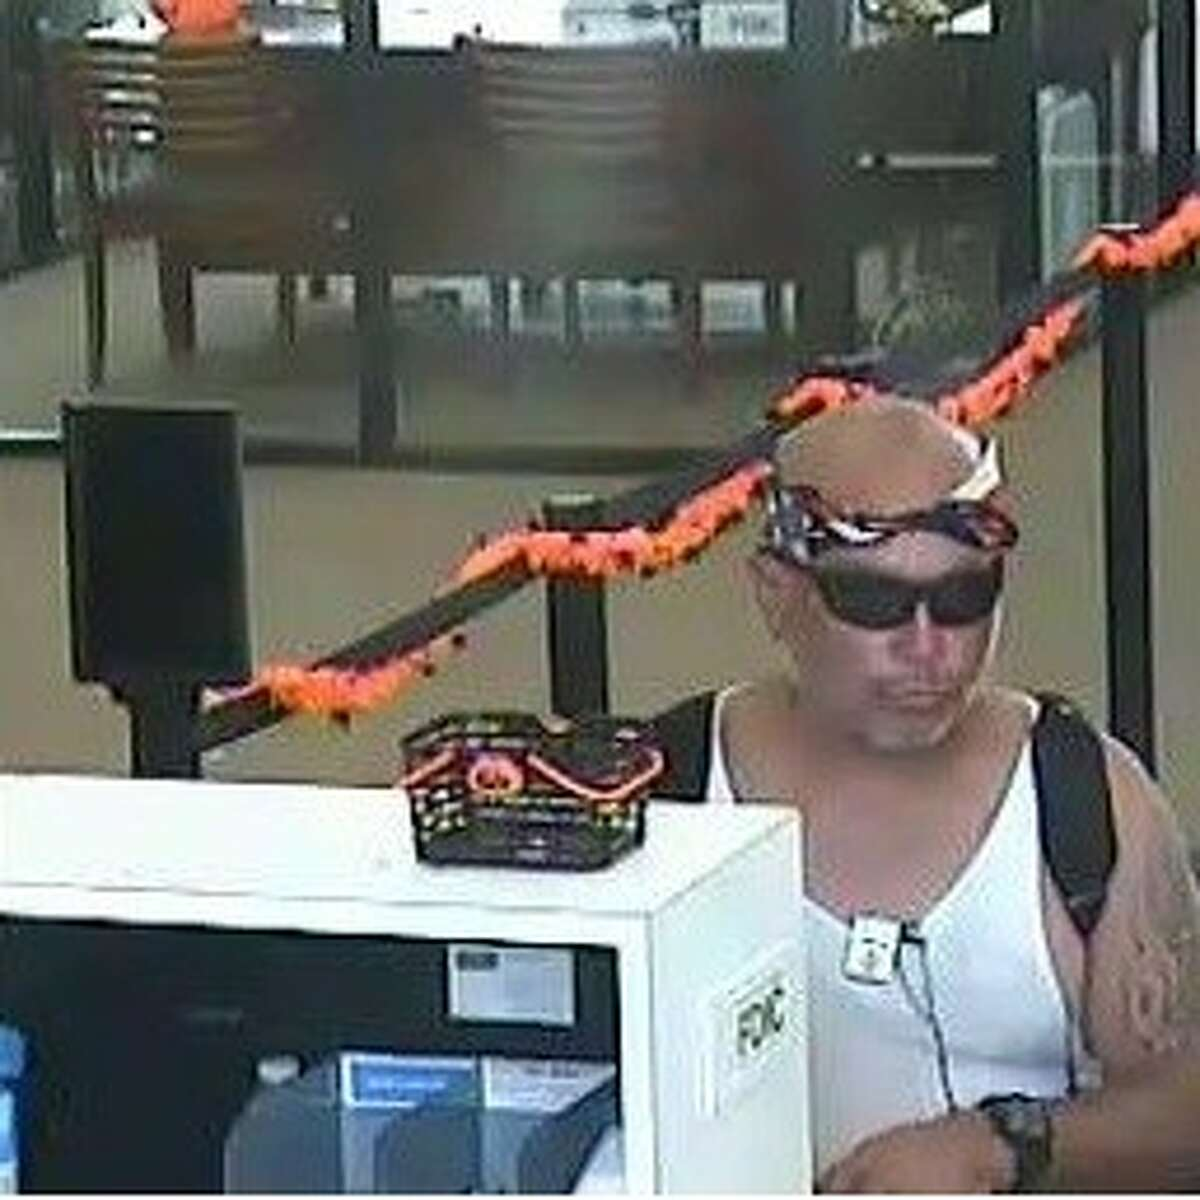 Authorities are searching for a man suspected of robbing a Wells Fargo Bank about 12:15 p.m. Tuesday, Oct. 11, 2016, at 4010 South Braeswood in southwest Houston. (FBI)